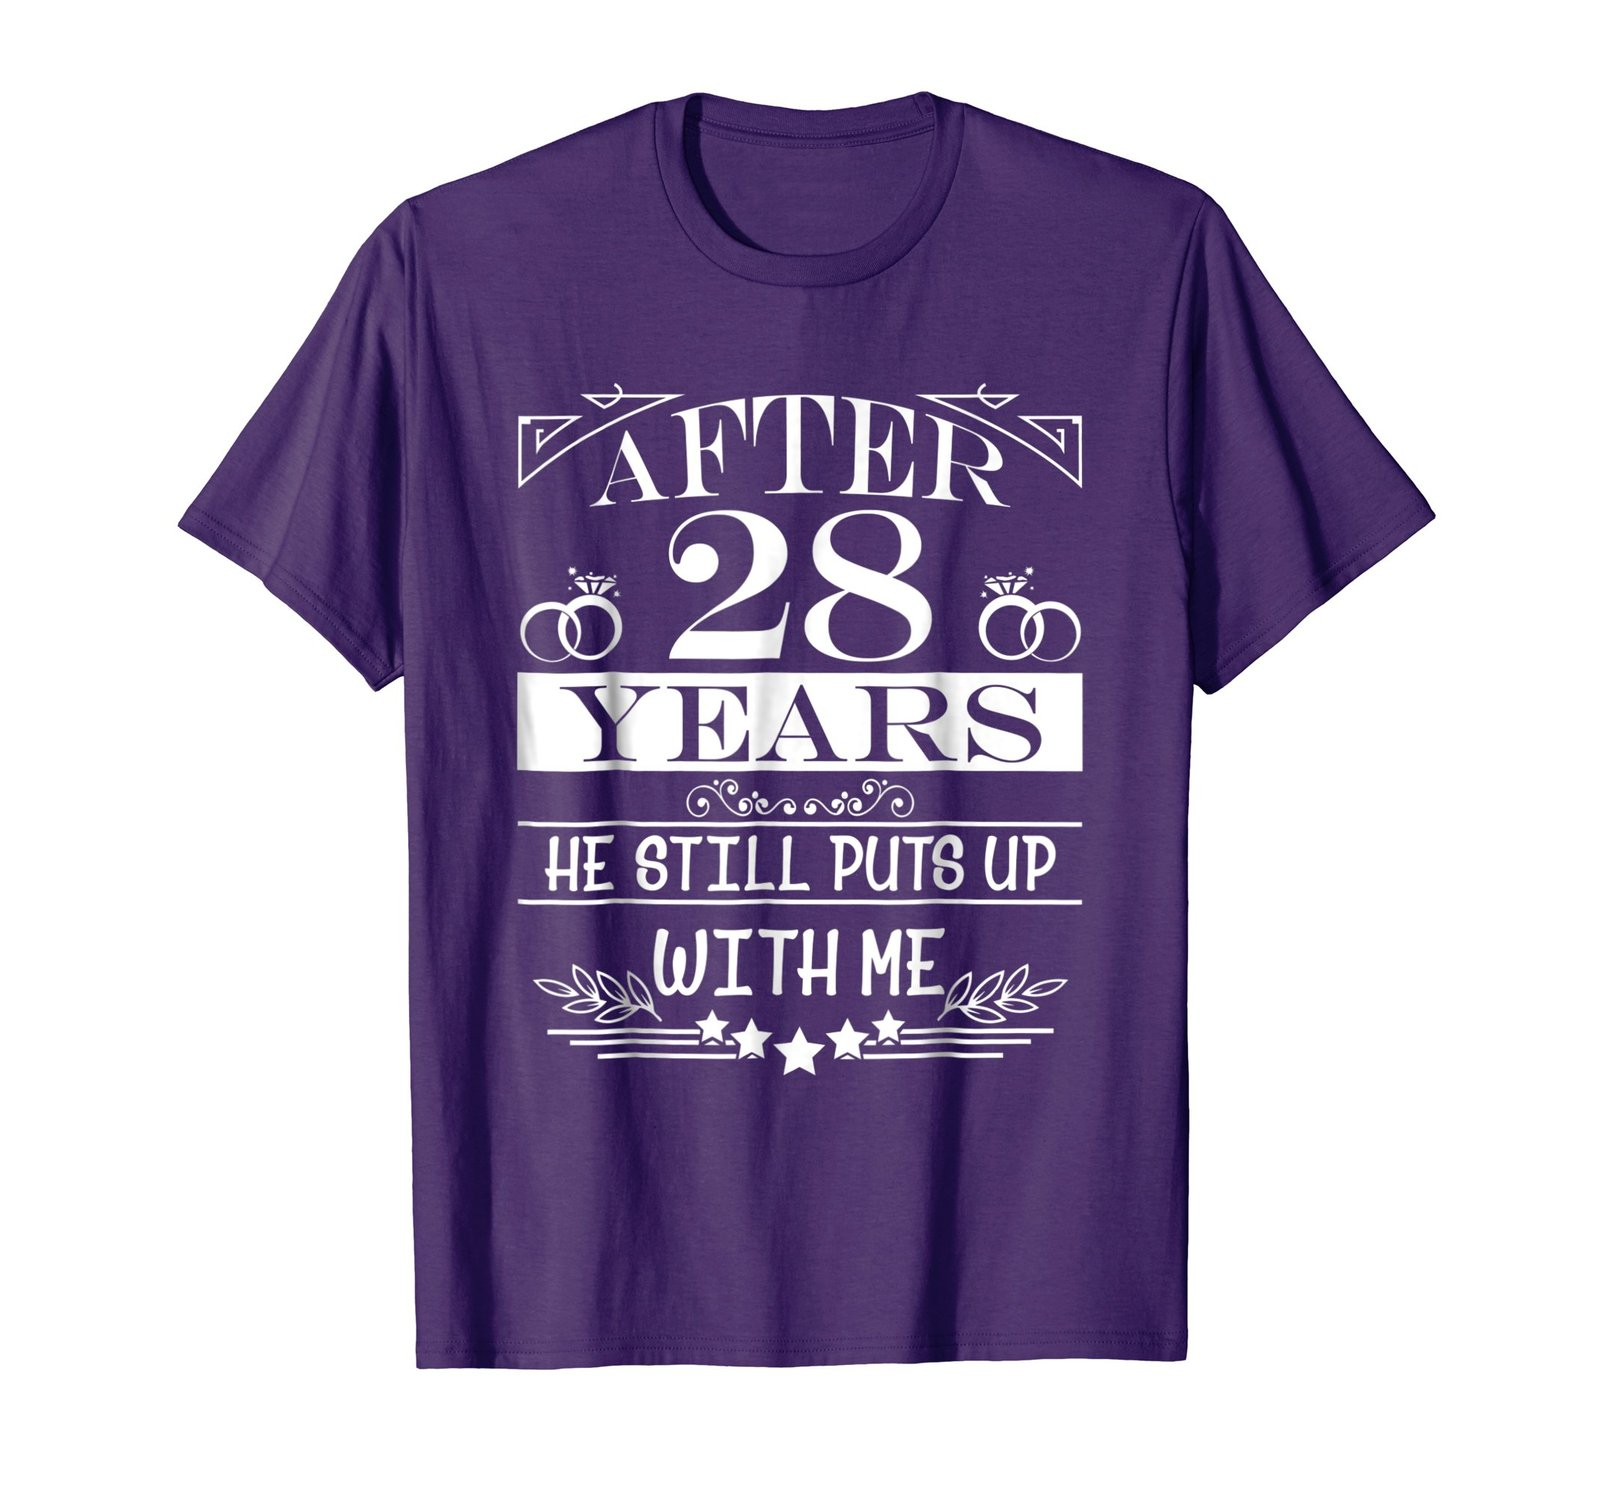 28th Wedding Anniversary Gift: 28th Wedding Anniversary Gifts For HerWife Couple Shirts